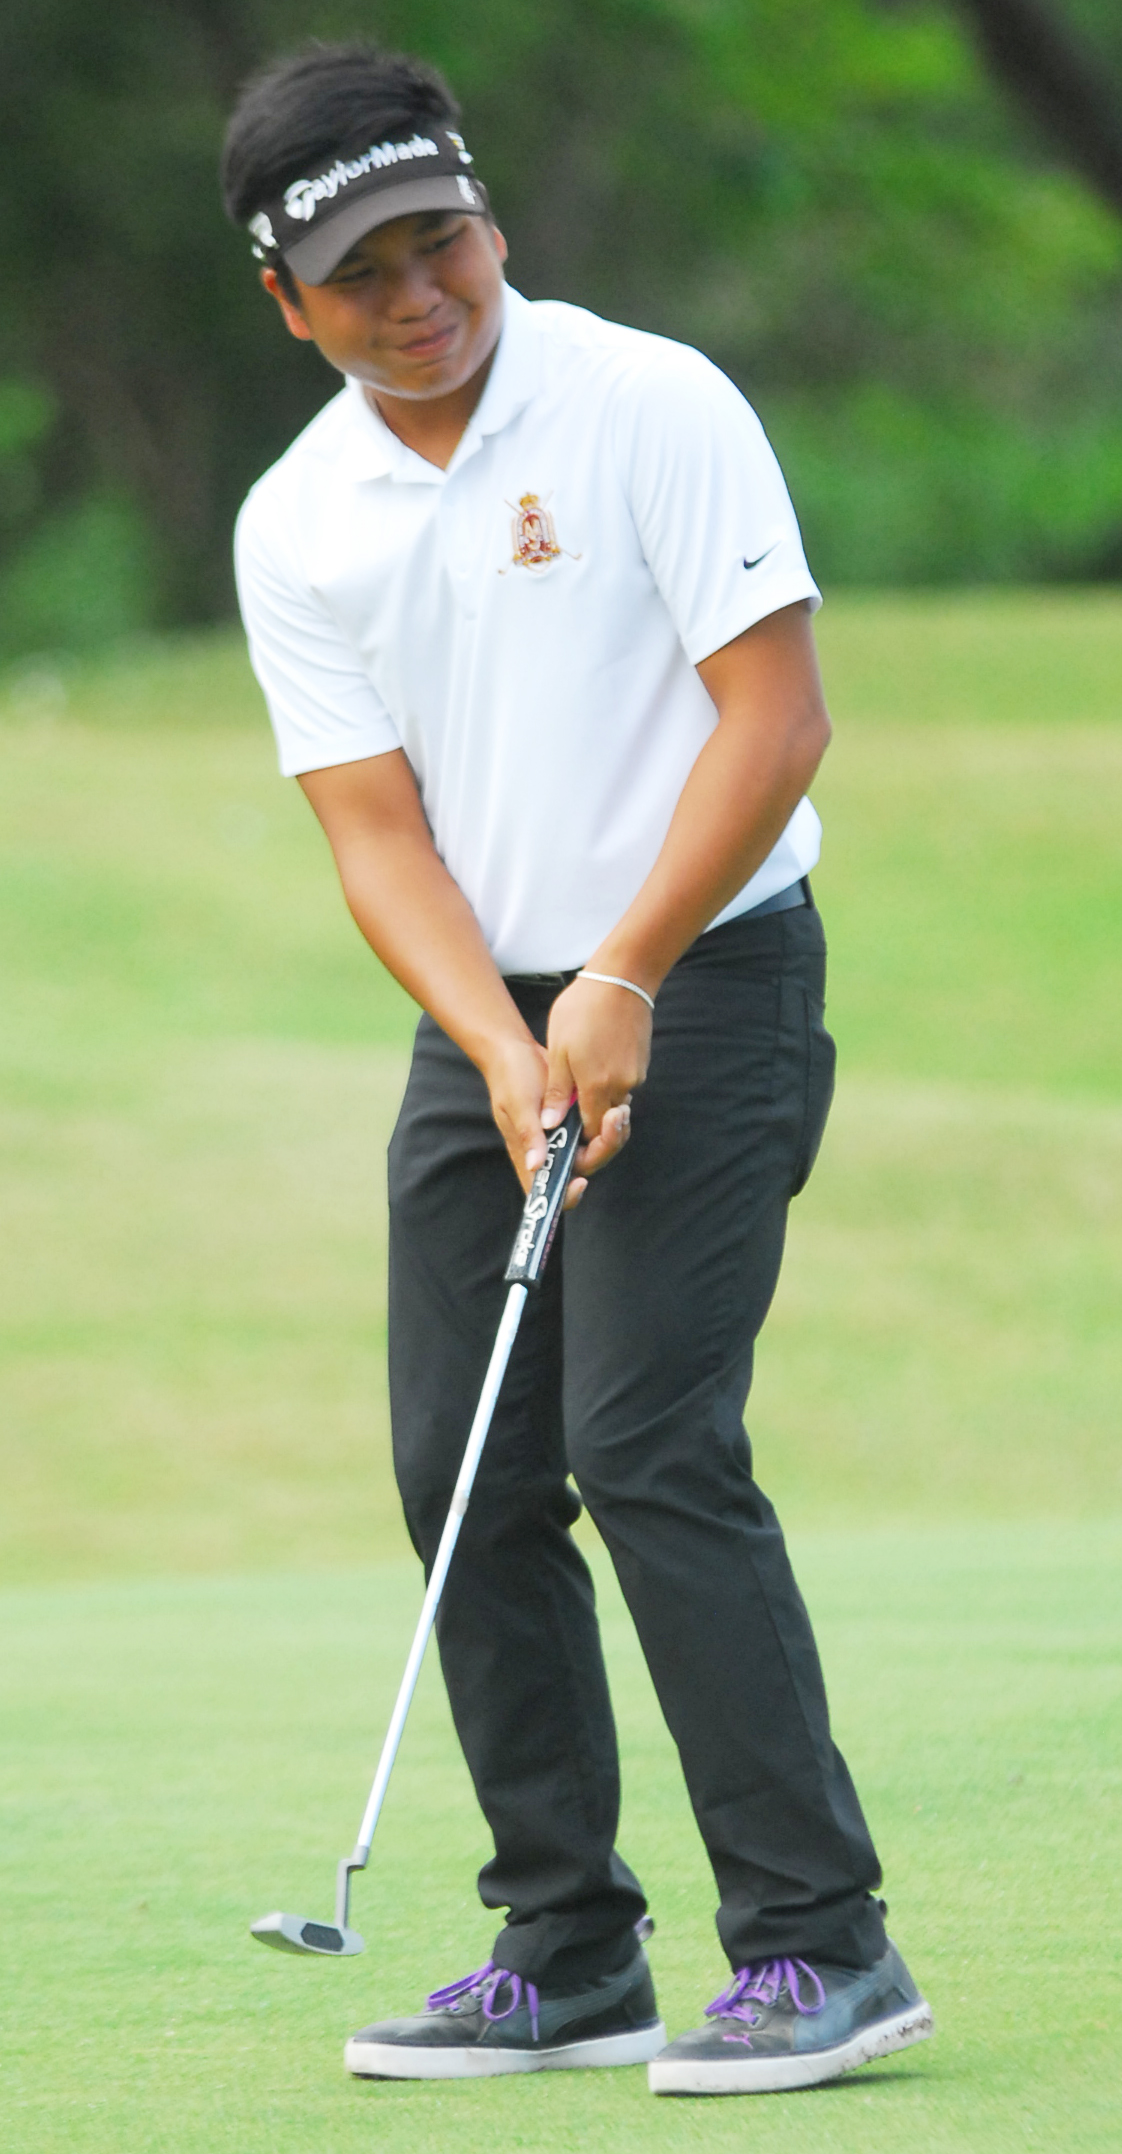 JUNGOLFER LEADS S'WOODS. Ira Alido signed for 39 points, a three-under-par in regulation, to lead the defending champion Manila Southwoods' charge and tie erstwhile leader Canlubang with a two-day team total 275 in the championship division of the 69th PAL Interclub in Clark, Pampanga. The 16-year-old junior golfer from De La Salle Zobel mixed five birdies as against two bogeys at the Acacia layout.